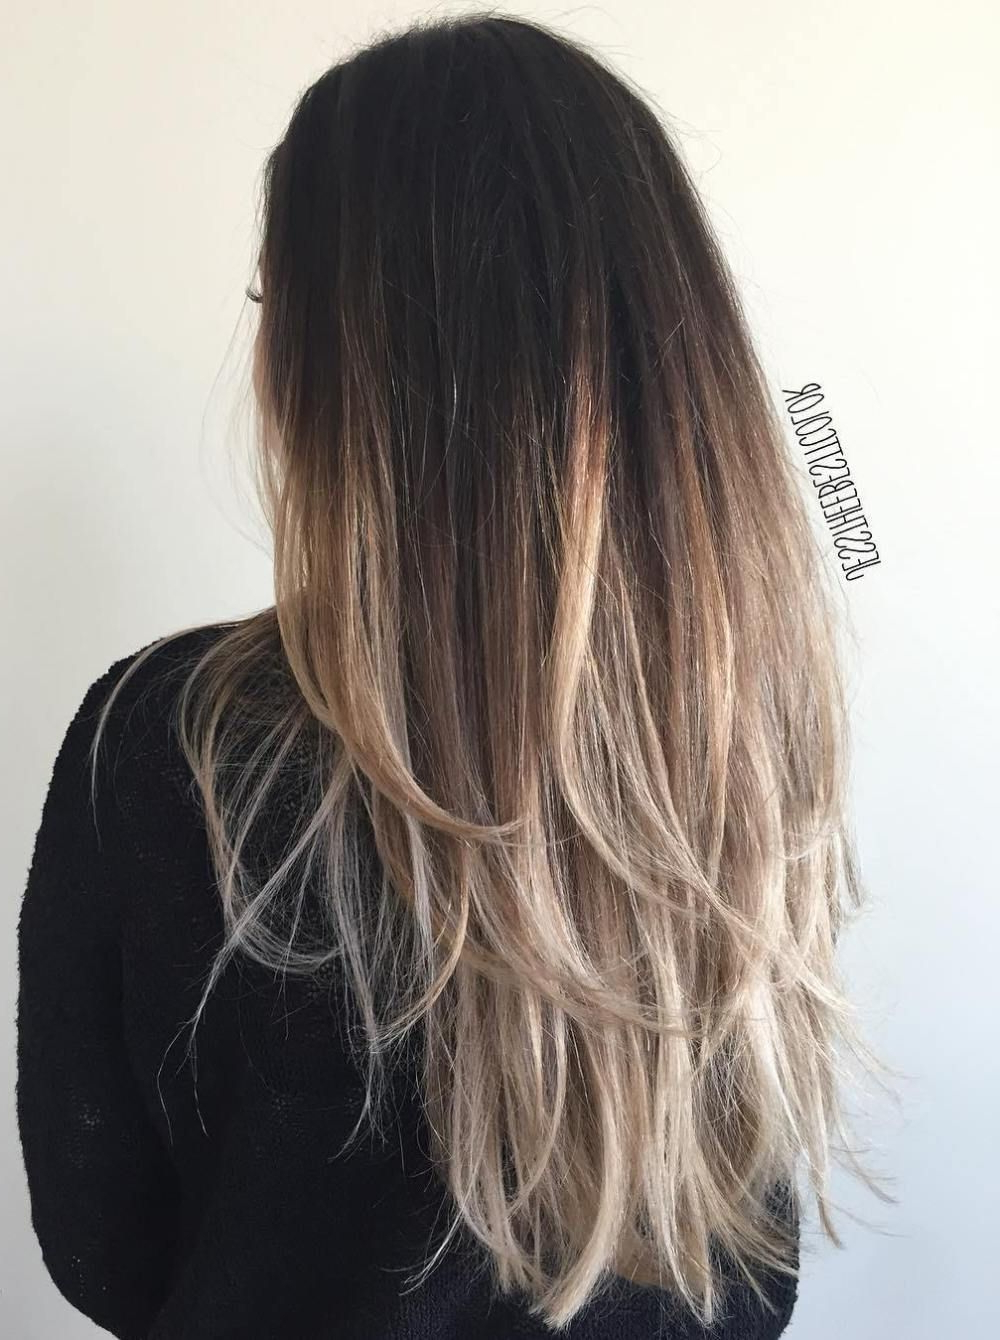 Trendy Long Voluminous Ombre Hairstyles With Layers Pertaining To 80 Cute Layered Hairstyles And Cuts For Long Hair (Gallery 12 of 20)